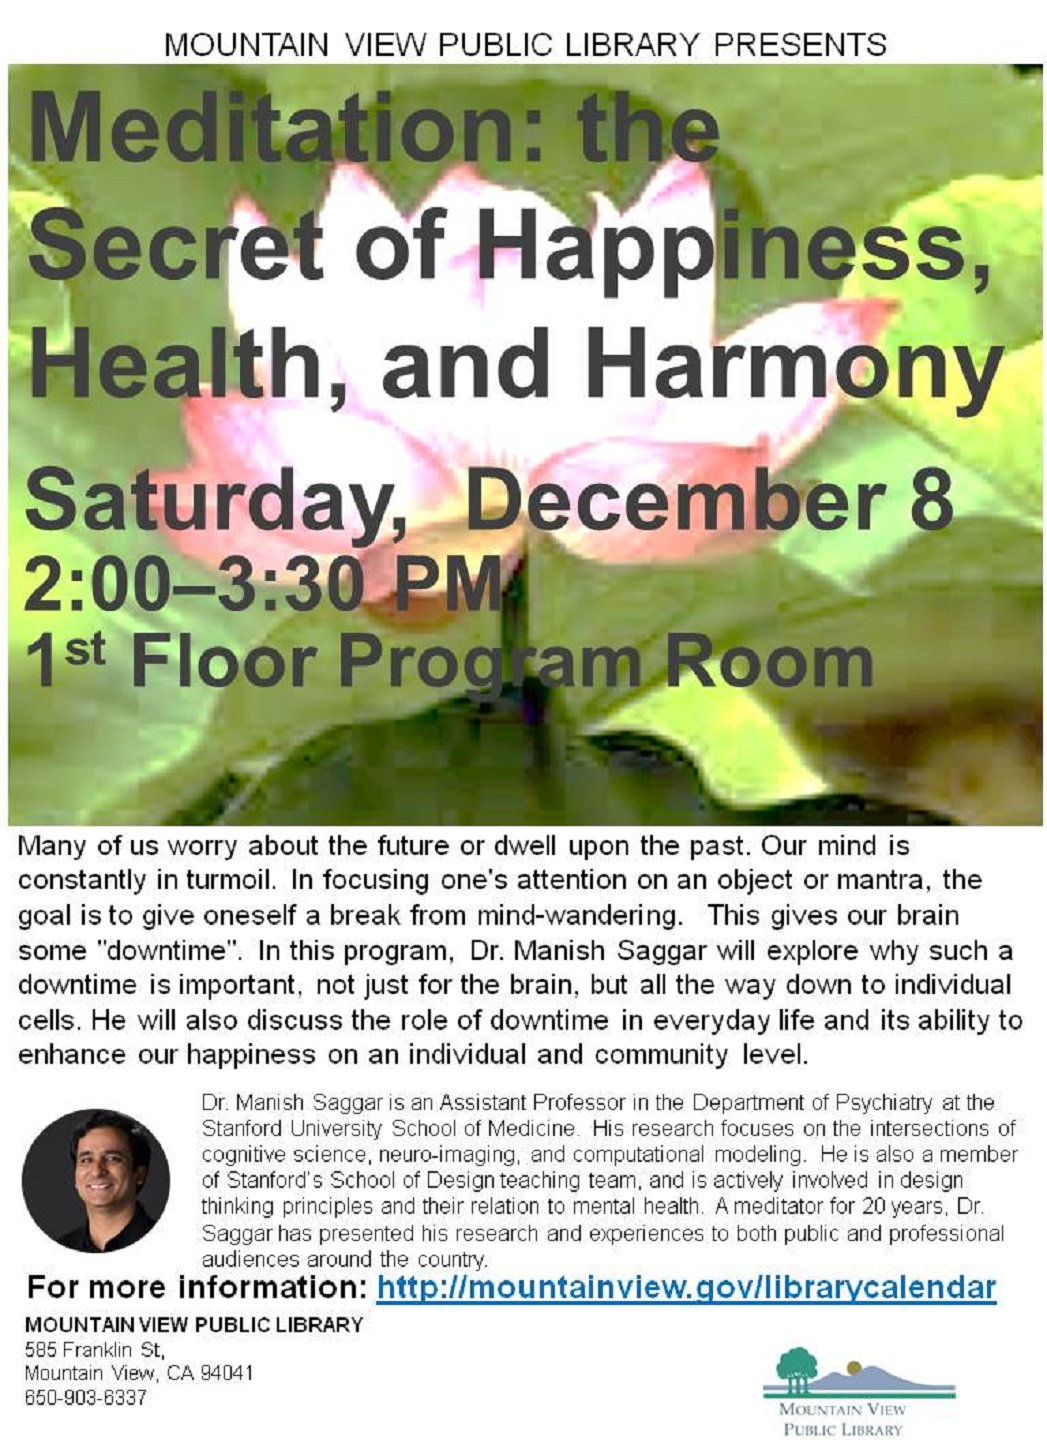 Meditation: the Secret of Happiness, Health, and Harmony with Dr. Manish Saggar